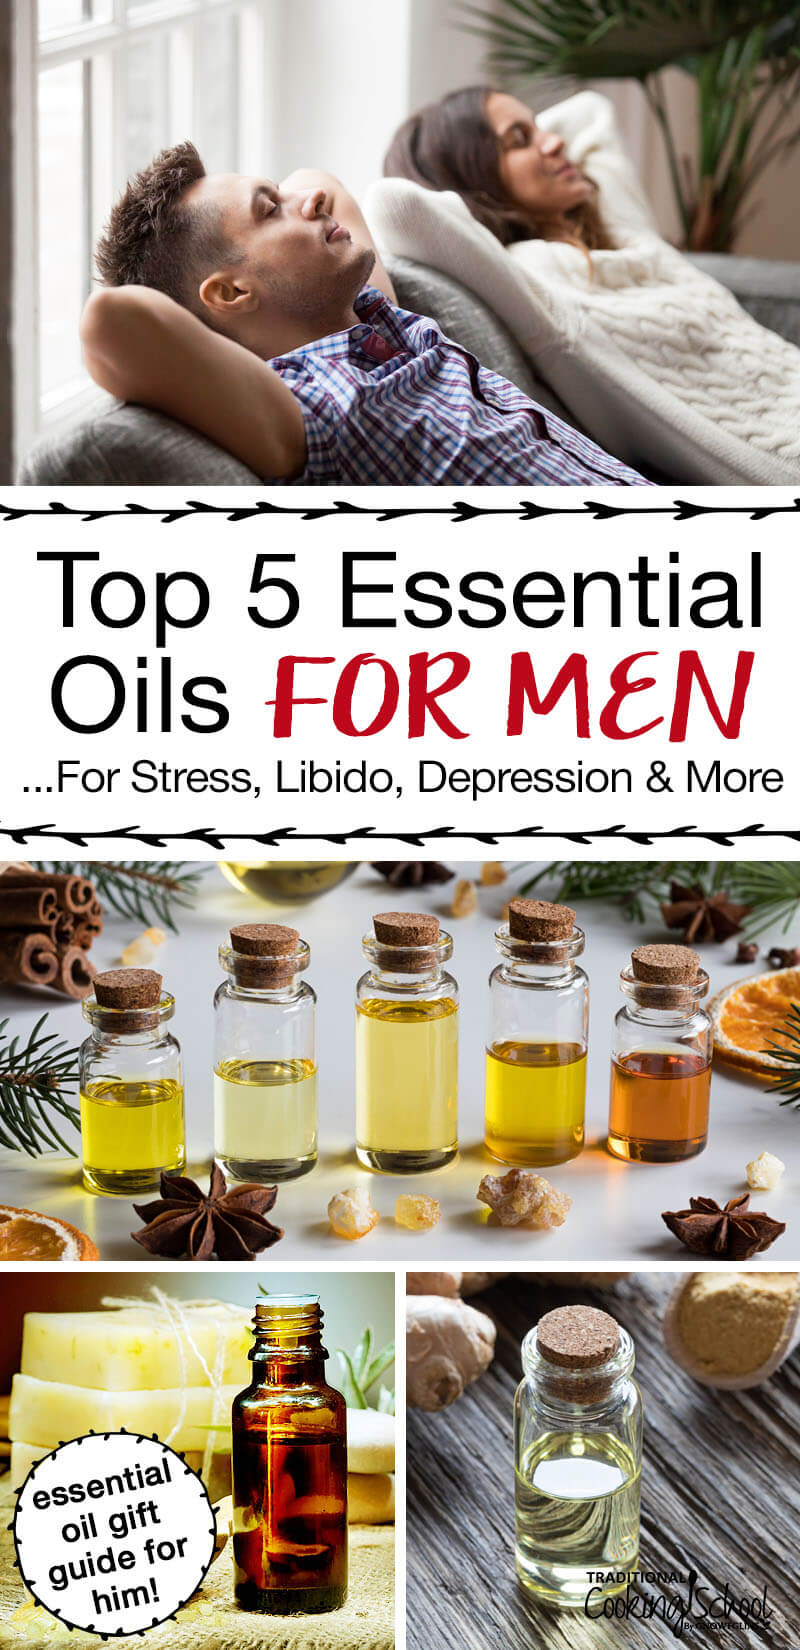 "photo collage of man and woman relaxing on a couch and bottles of essential oils with text overlay: ""Top 5 Essential Oils For Men...For Stress, Libido, Depression & More"""